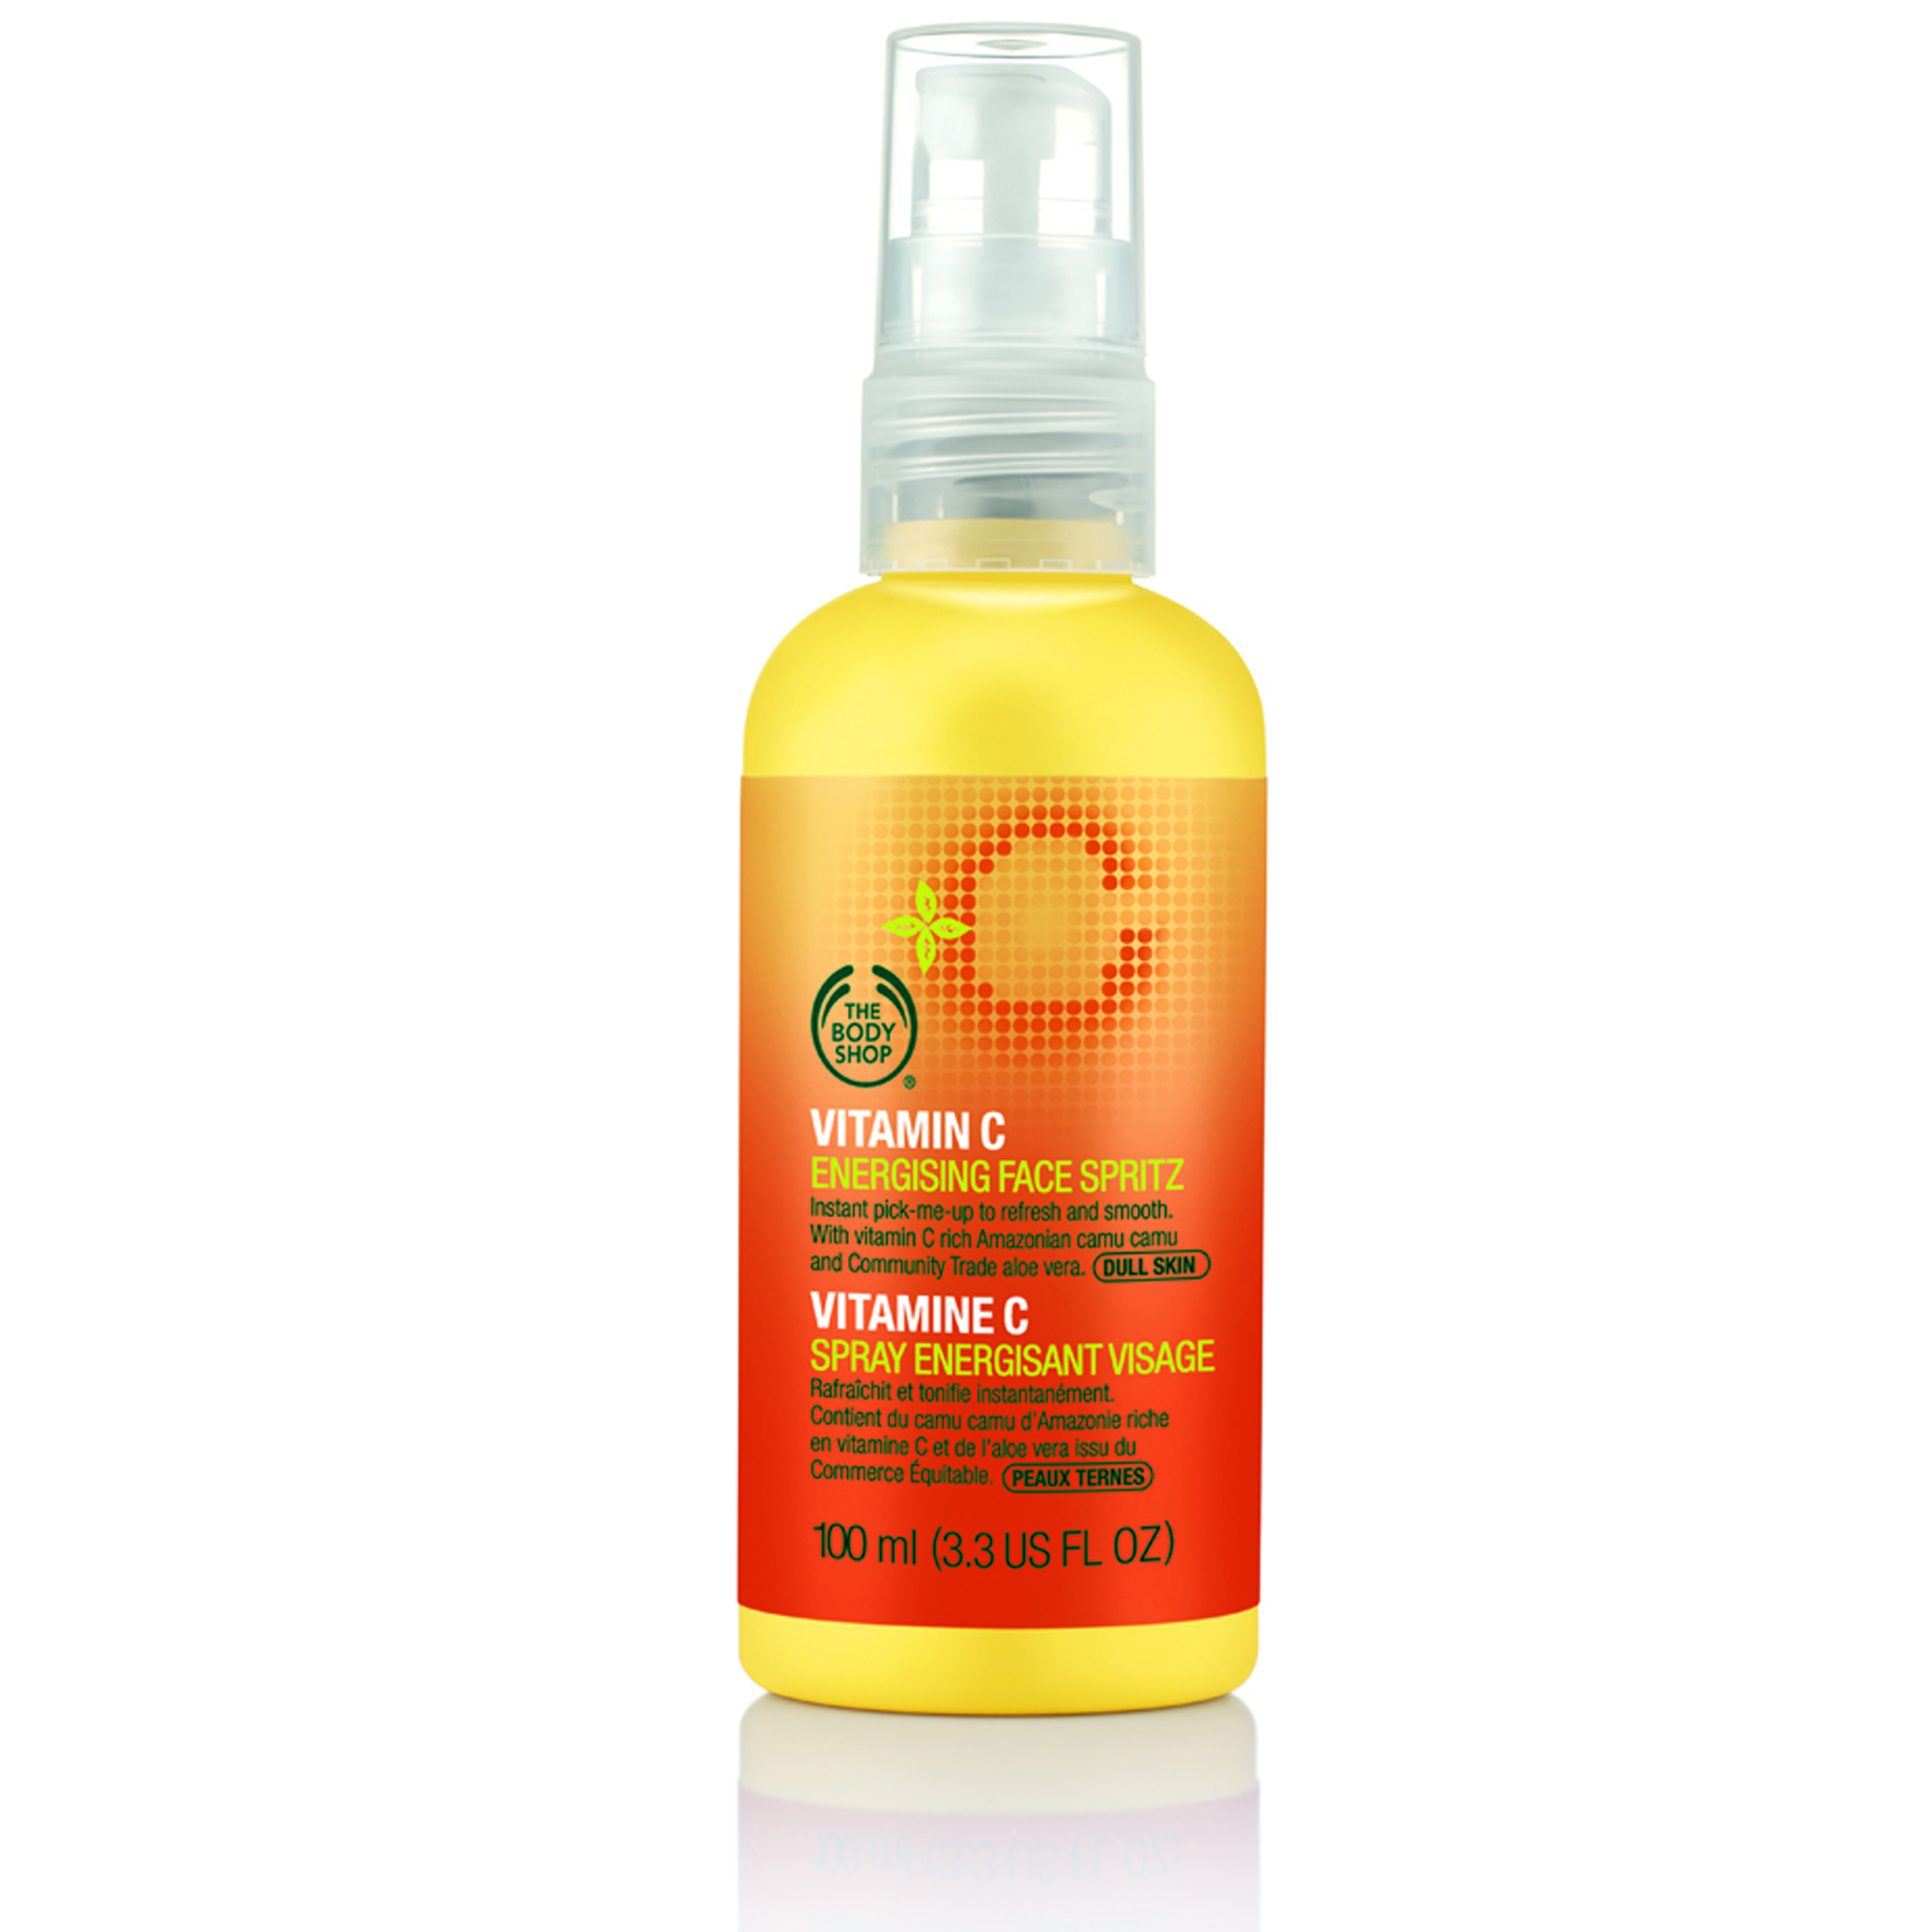 The Body Shop Vitamin C Energising Facial Spritz-best facial spritzers-beauty tips-beauty advice-woman and home